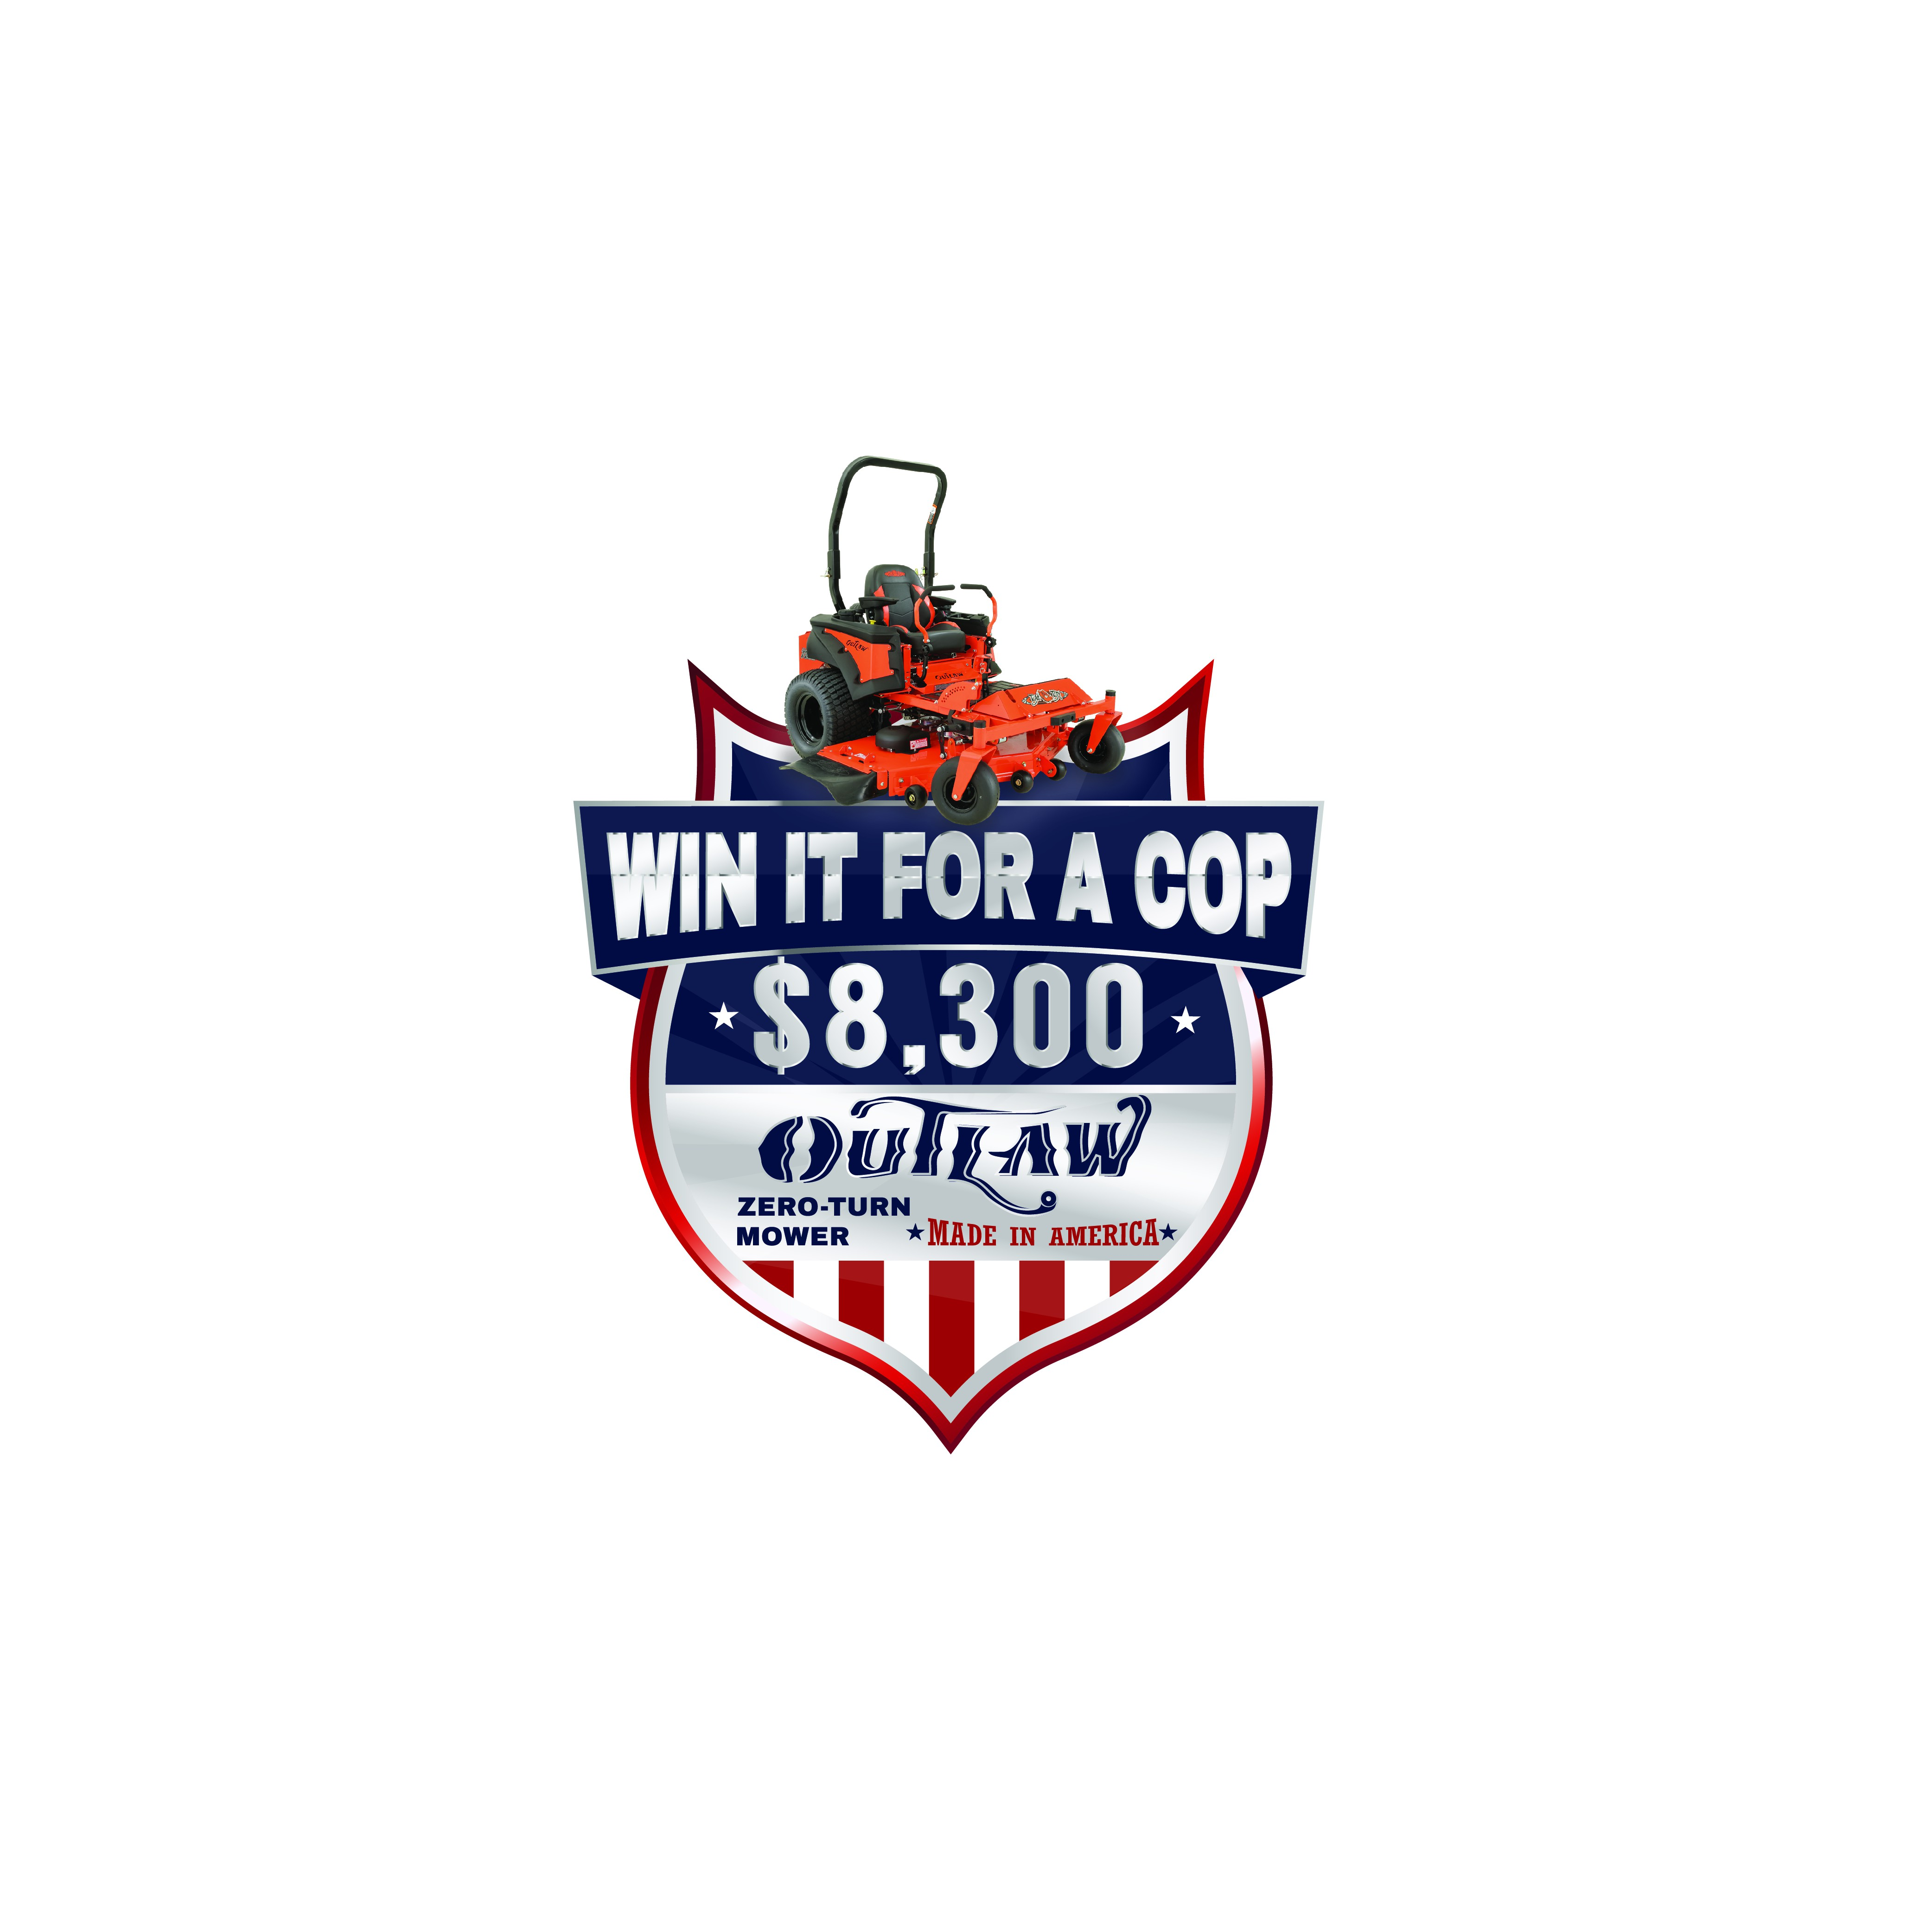 WIN IT FOR A COP...$8,300 PRIZE!